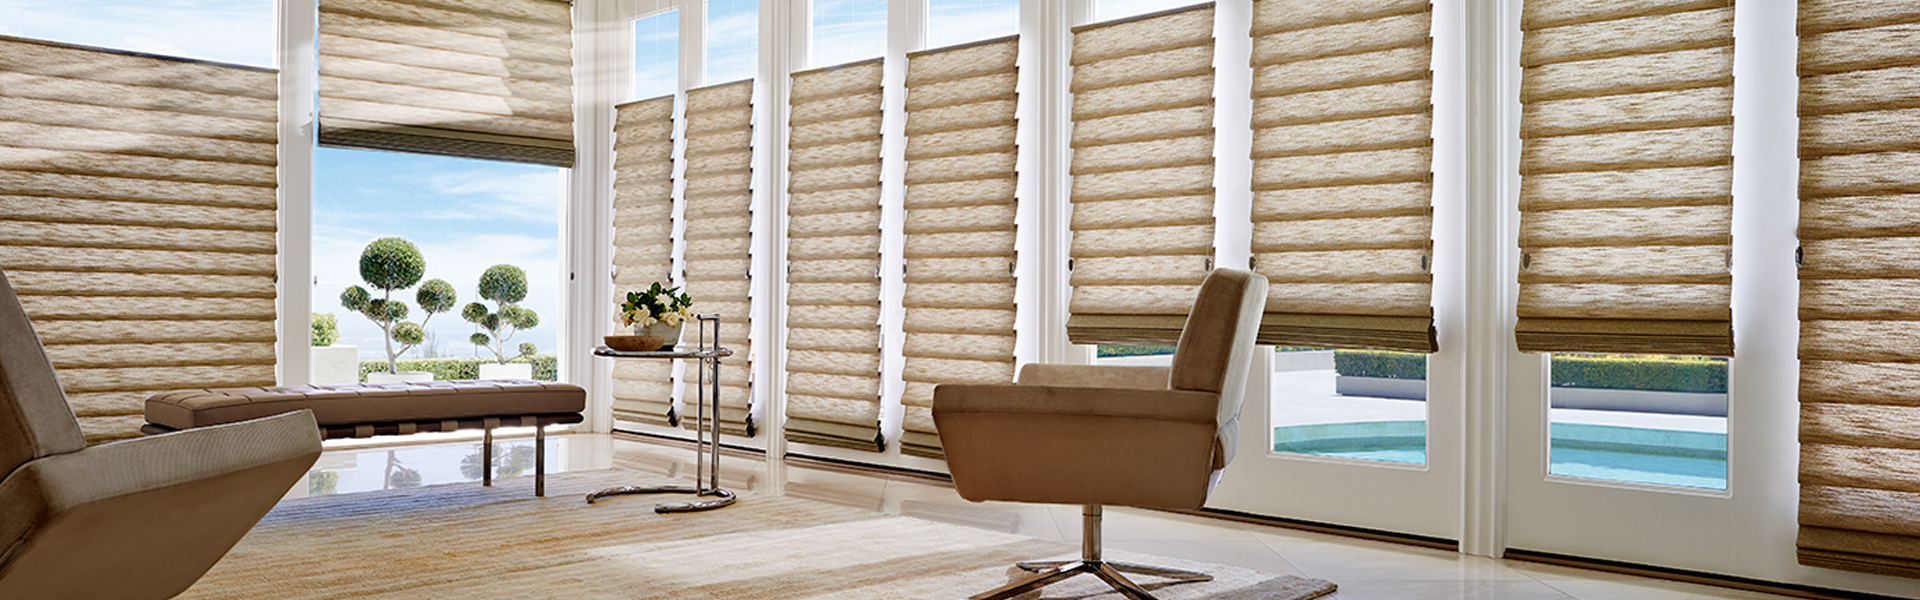 Elegant Blinds Shutters St Petersburg Blinds Shutters